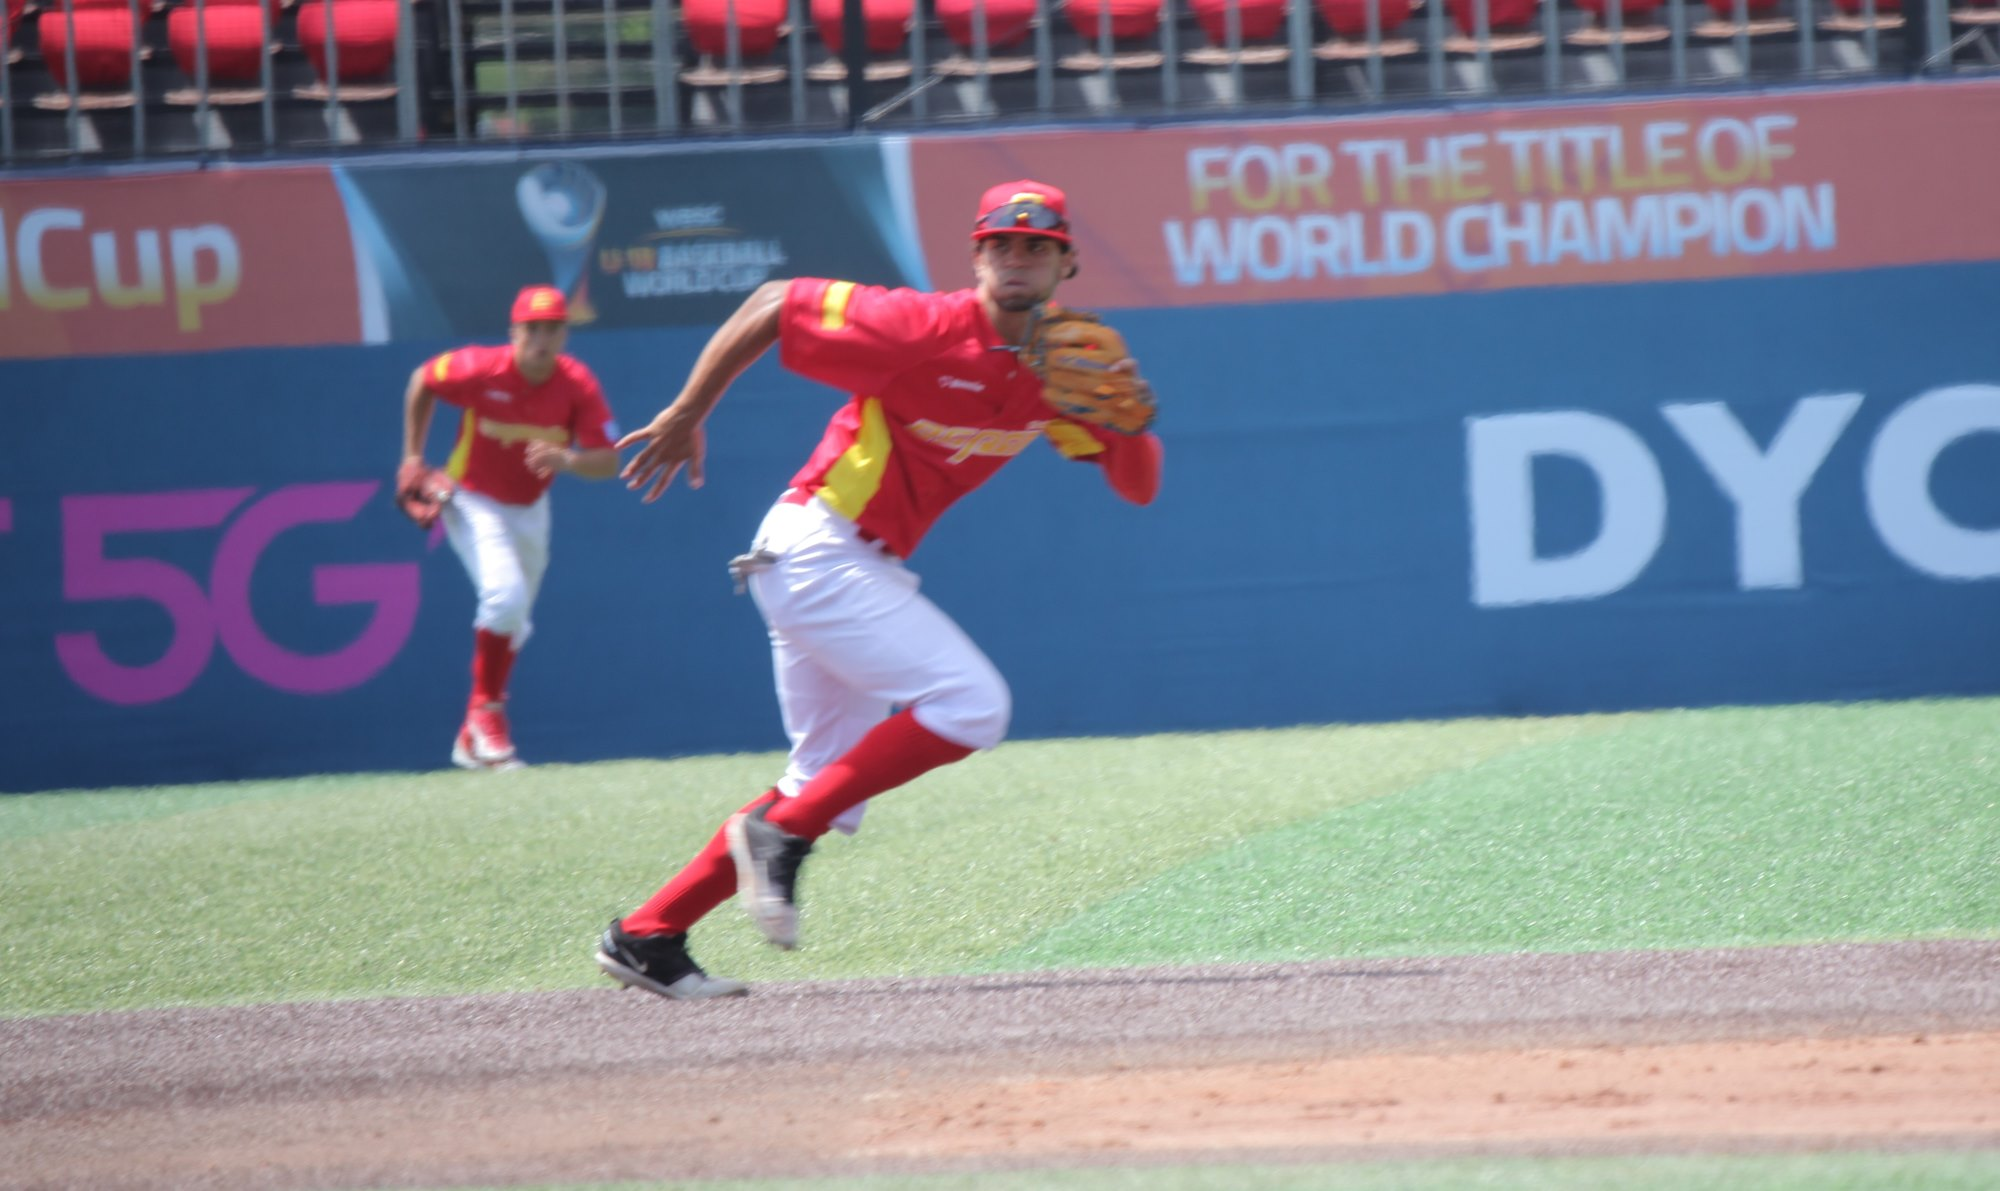 Spain took a 2-0 lead into the eighth inning